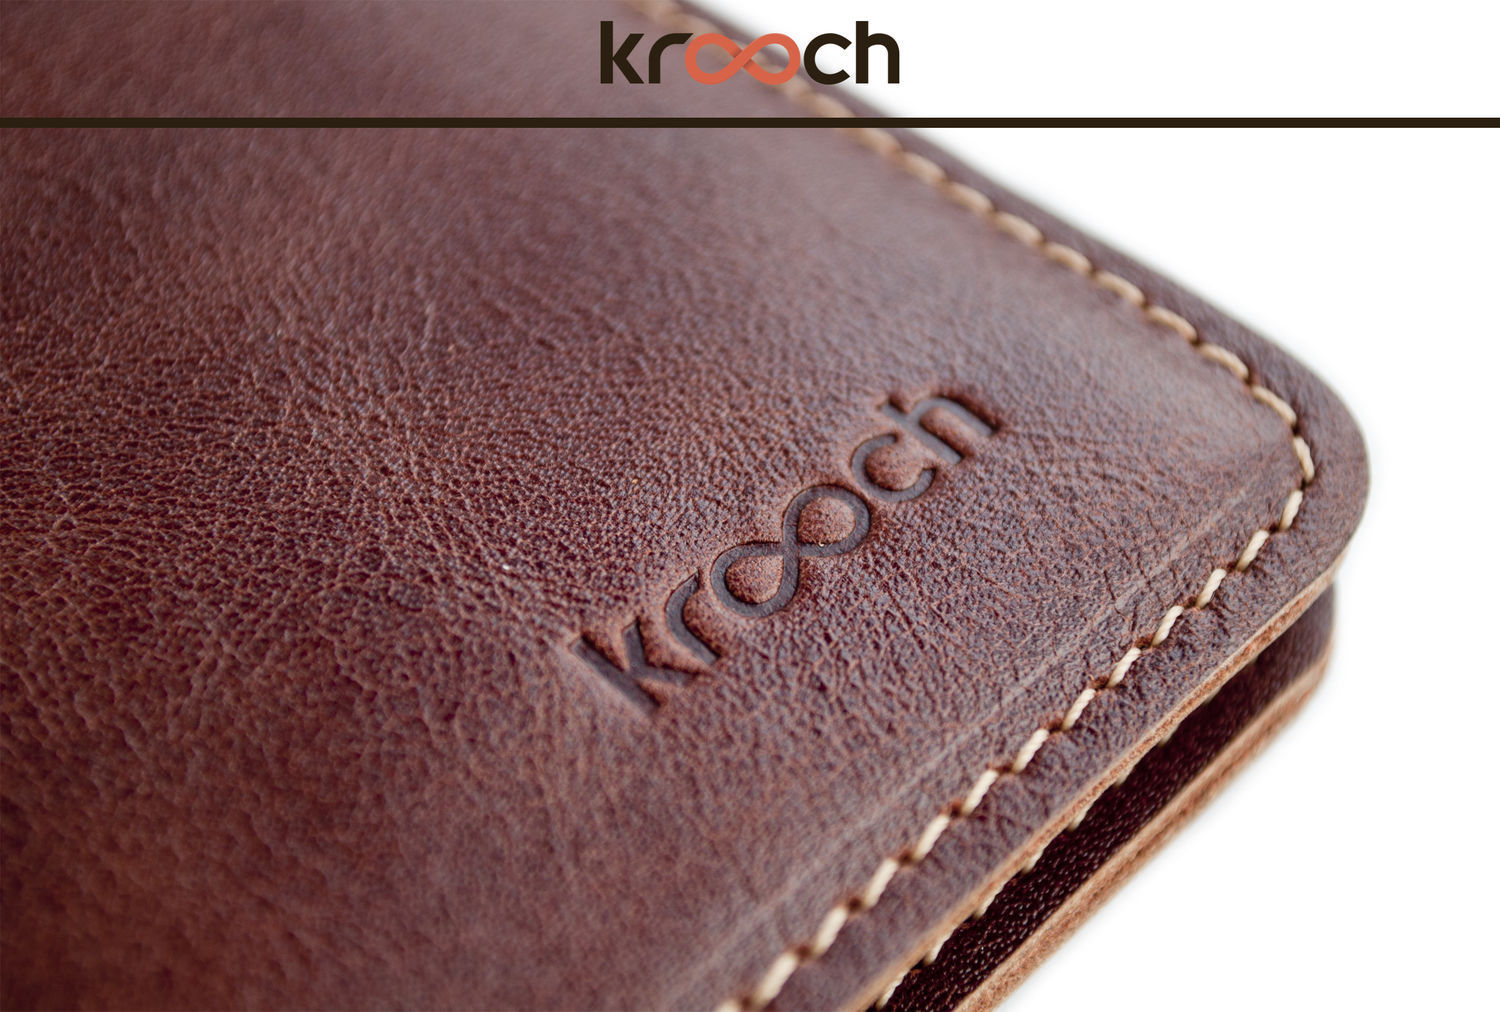 Leather Wallet Mego Shop Online On Livemaster With Shipping